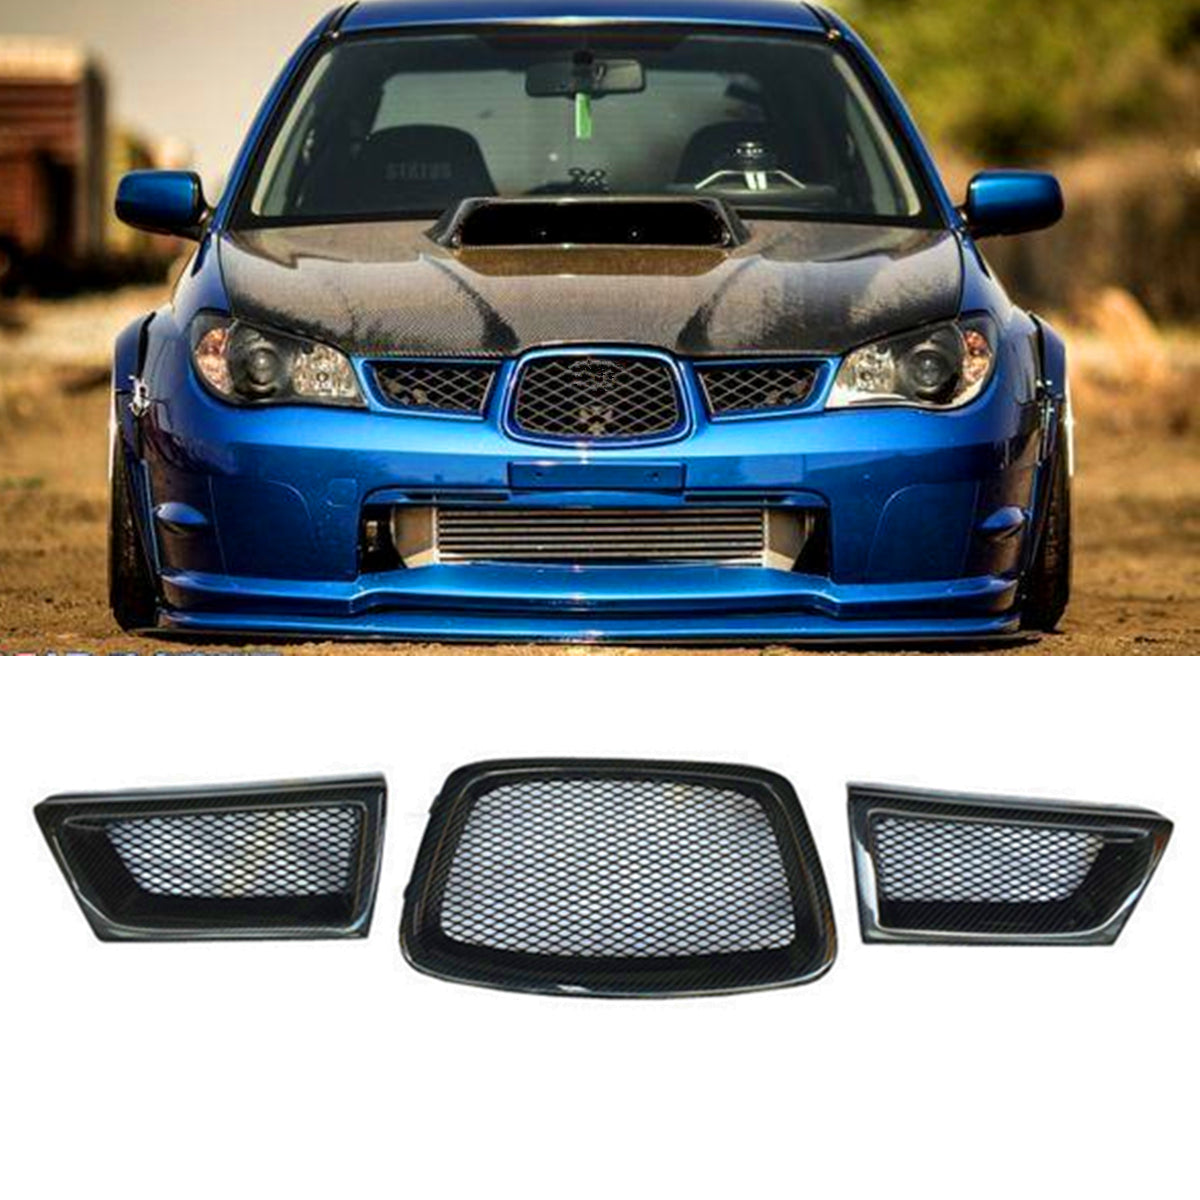 Black 3Pcs Carbon Fiber Car Front Lower Mesh Grill Grille for subaru Impreza WRX STi 9th 2006-2007 28012